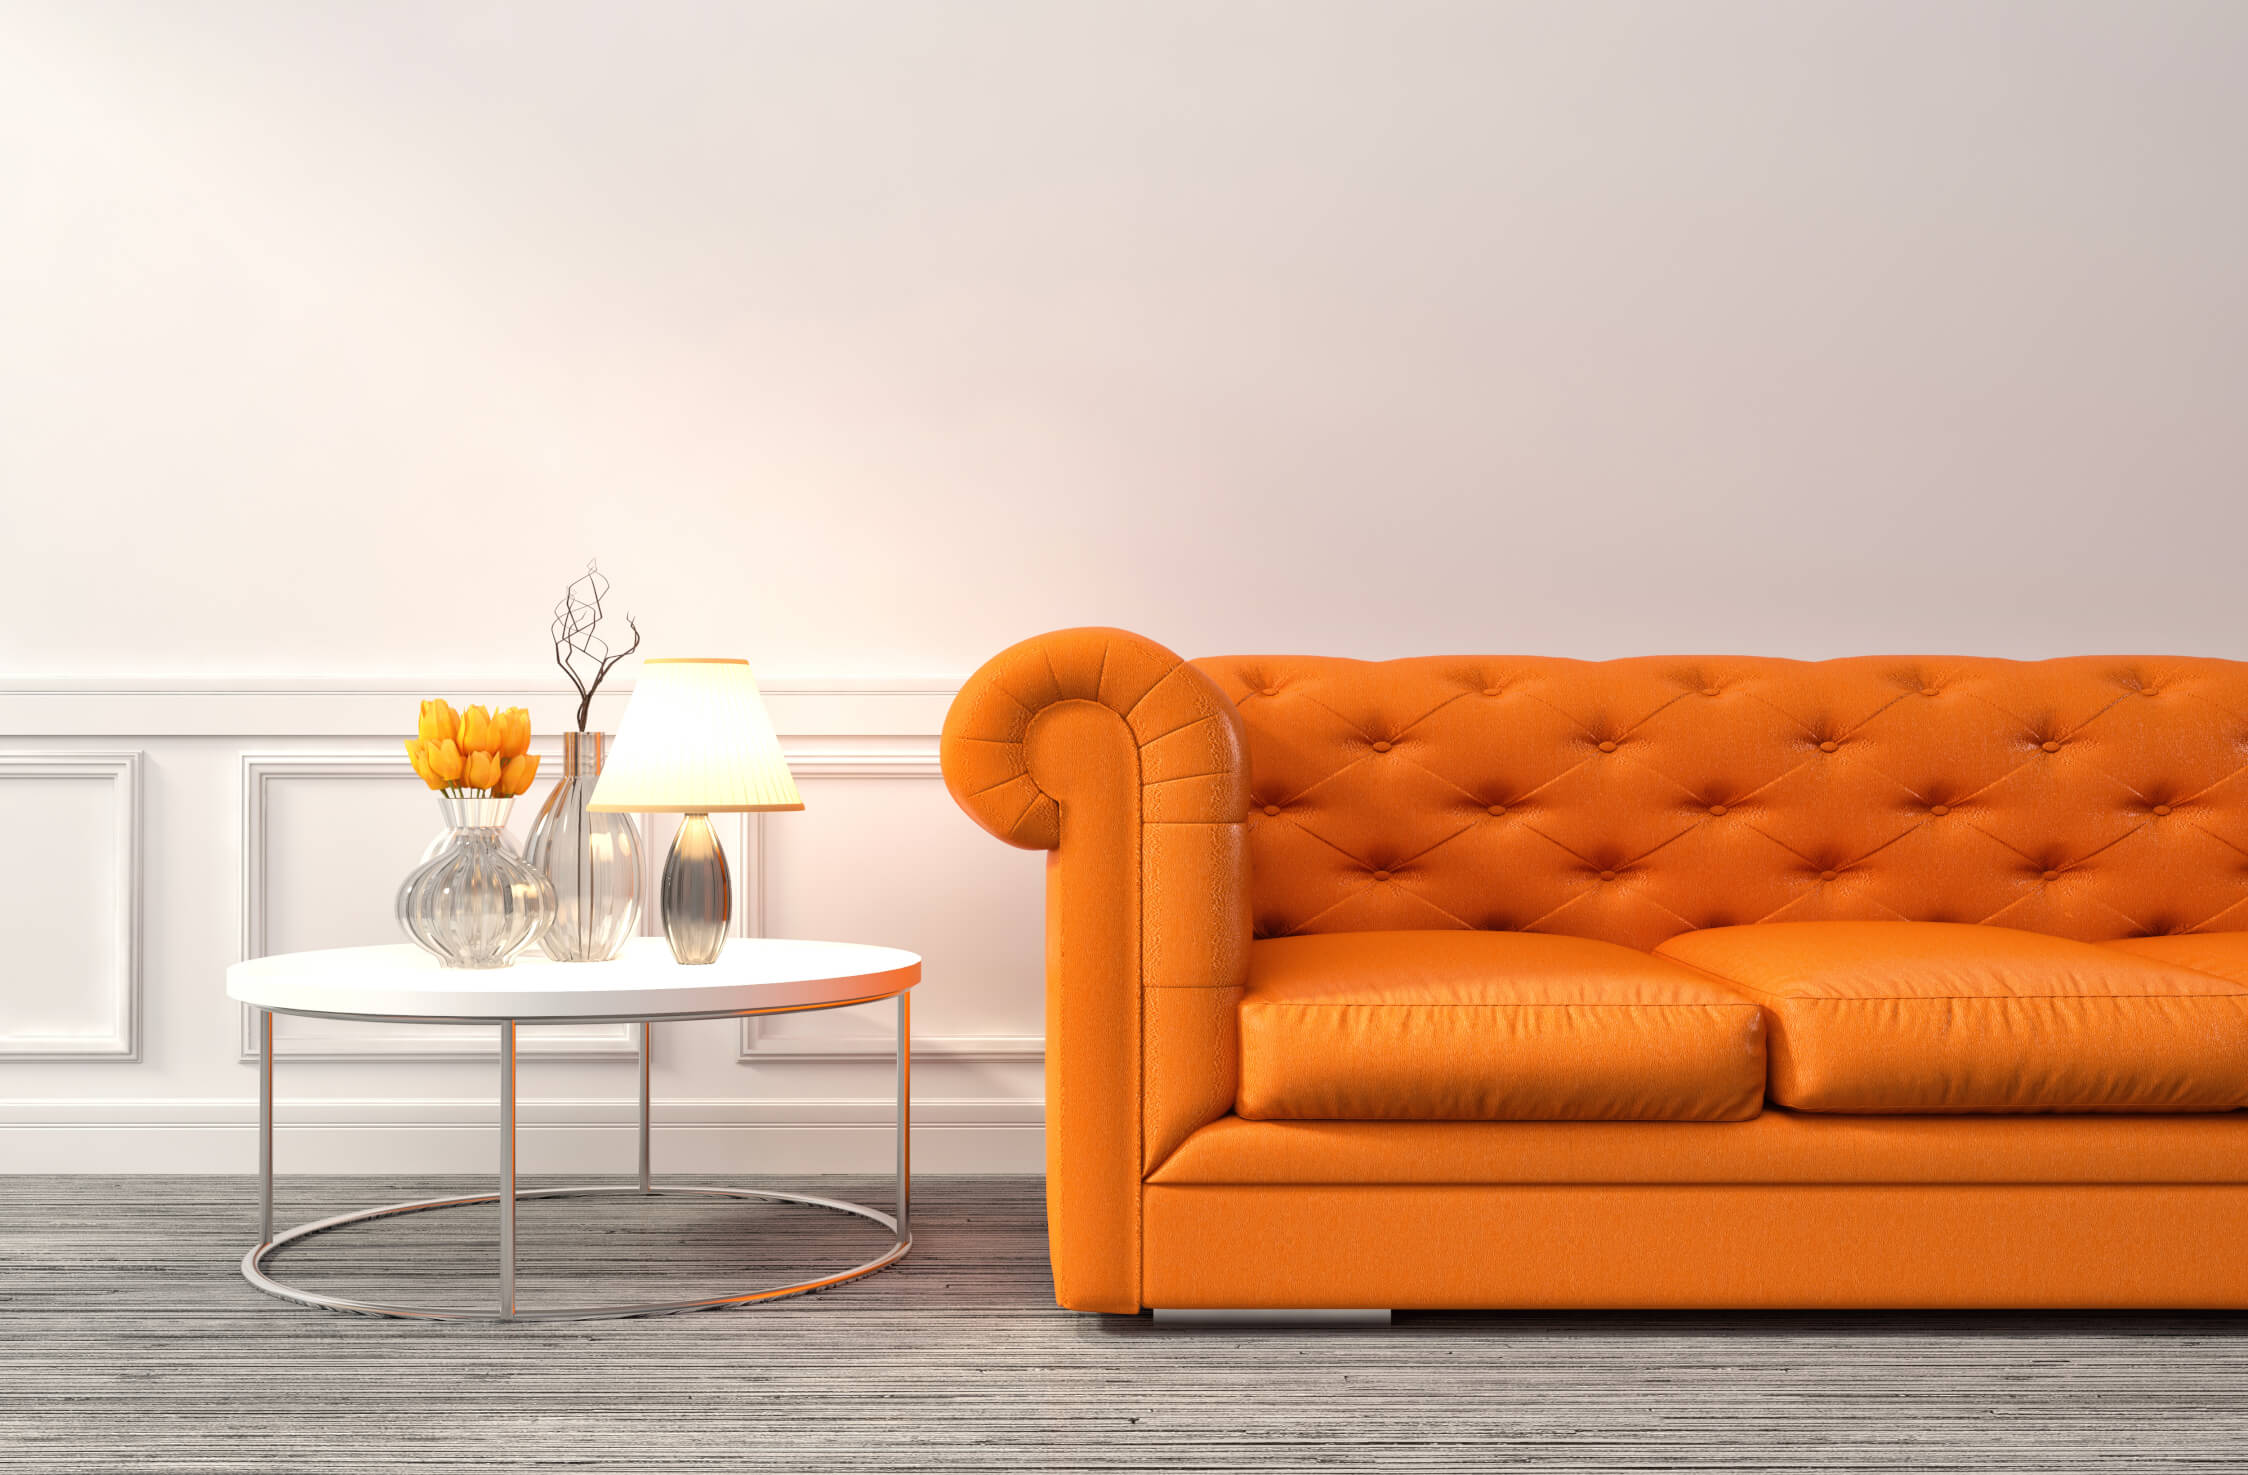 interior with orange sofa. 3d illustration